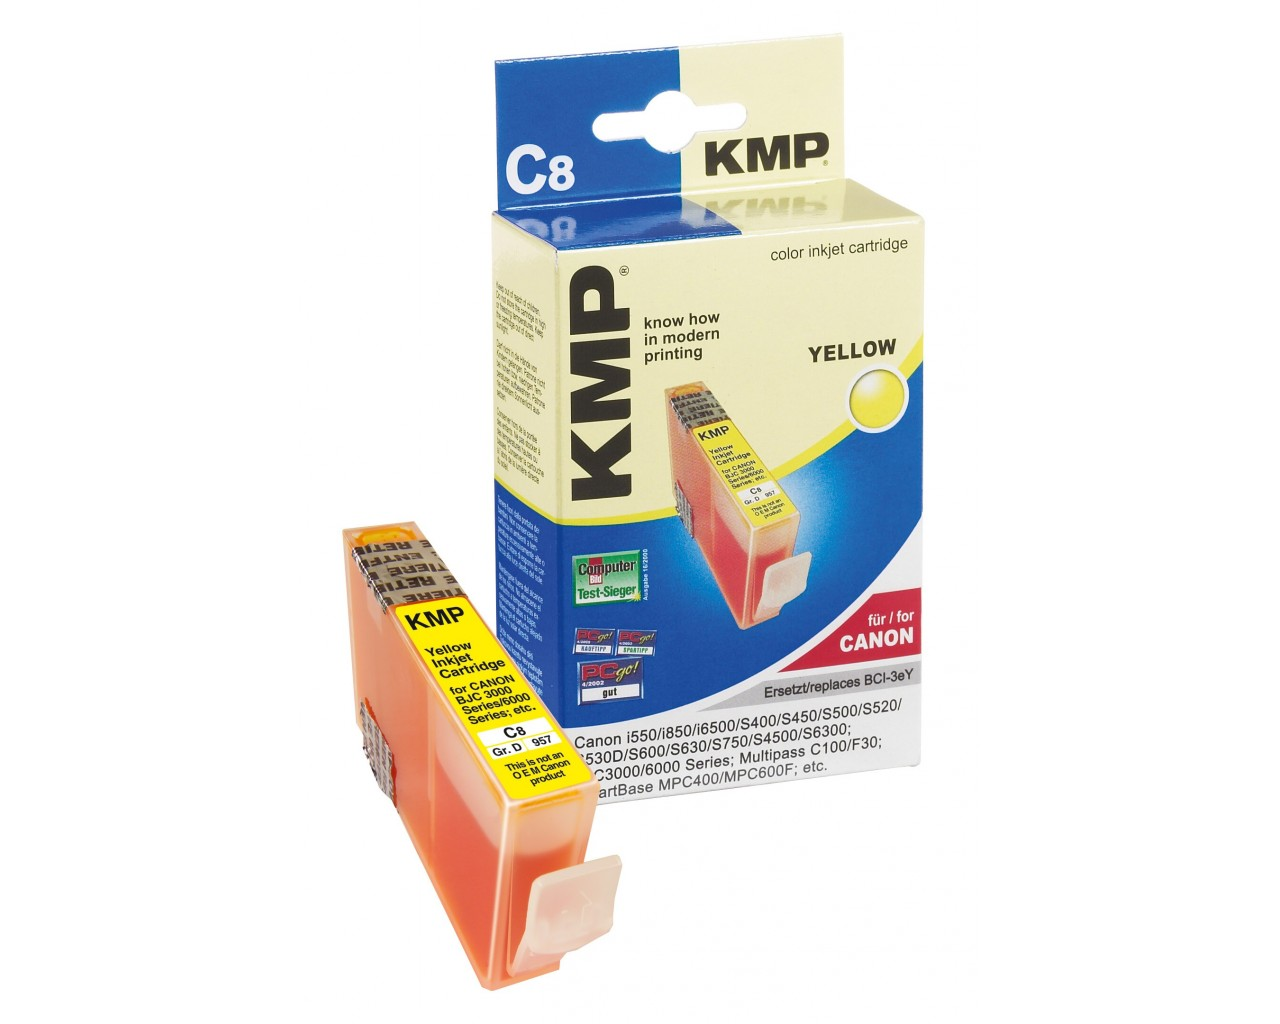 KMP Canon C8  ink cartridge žlutá 17ml